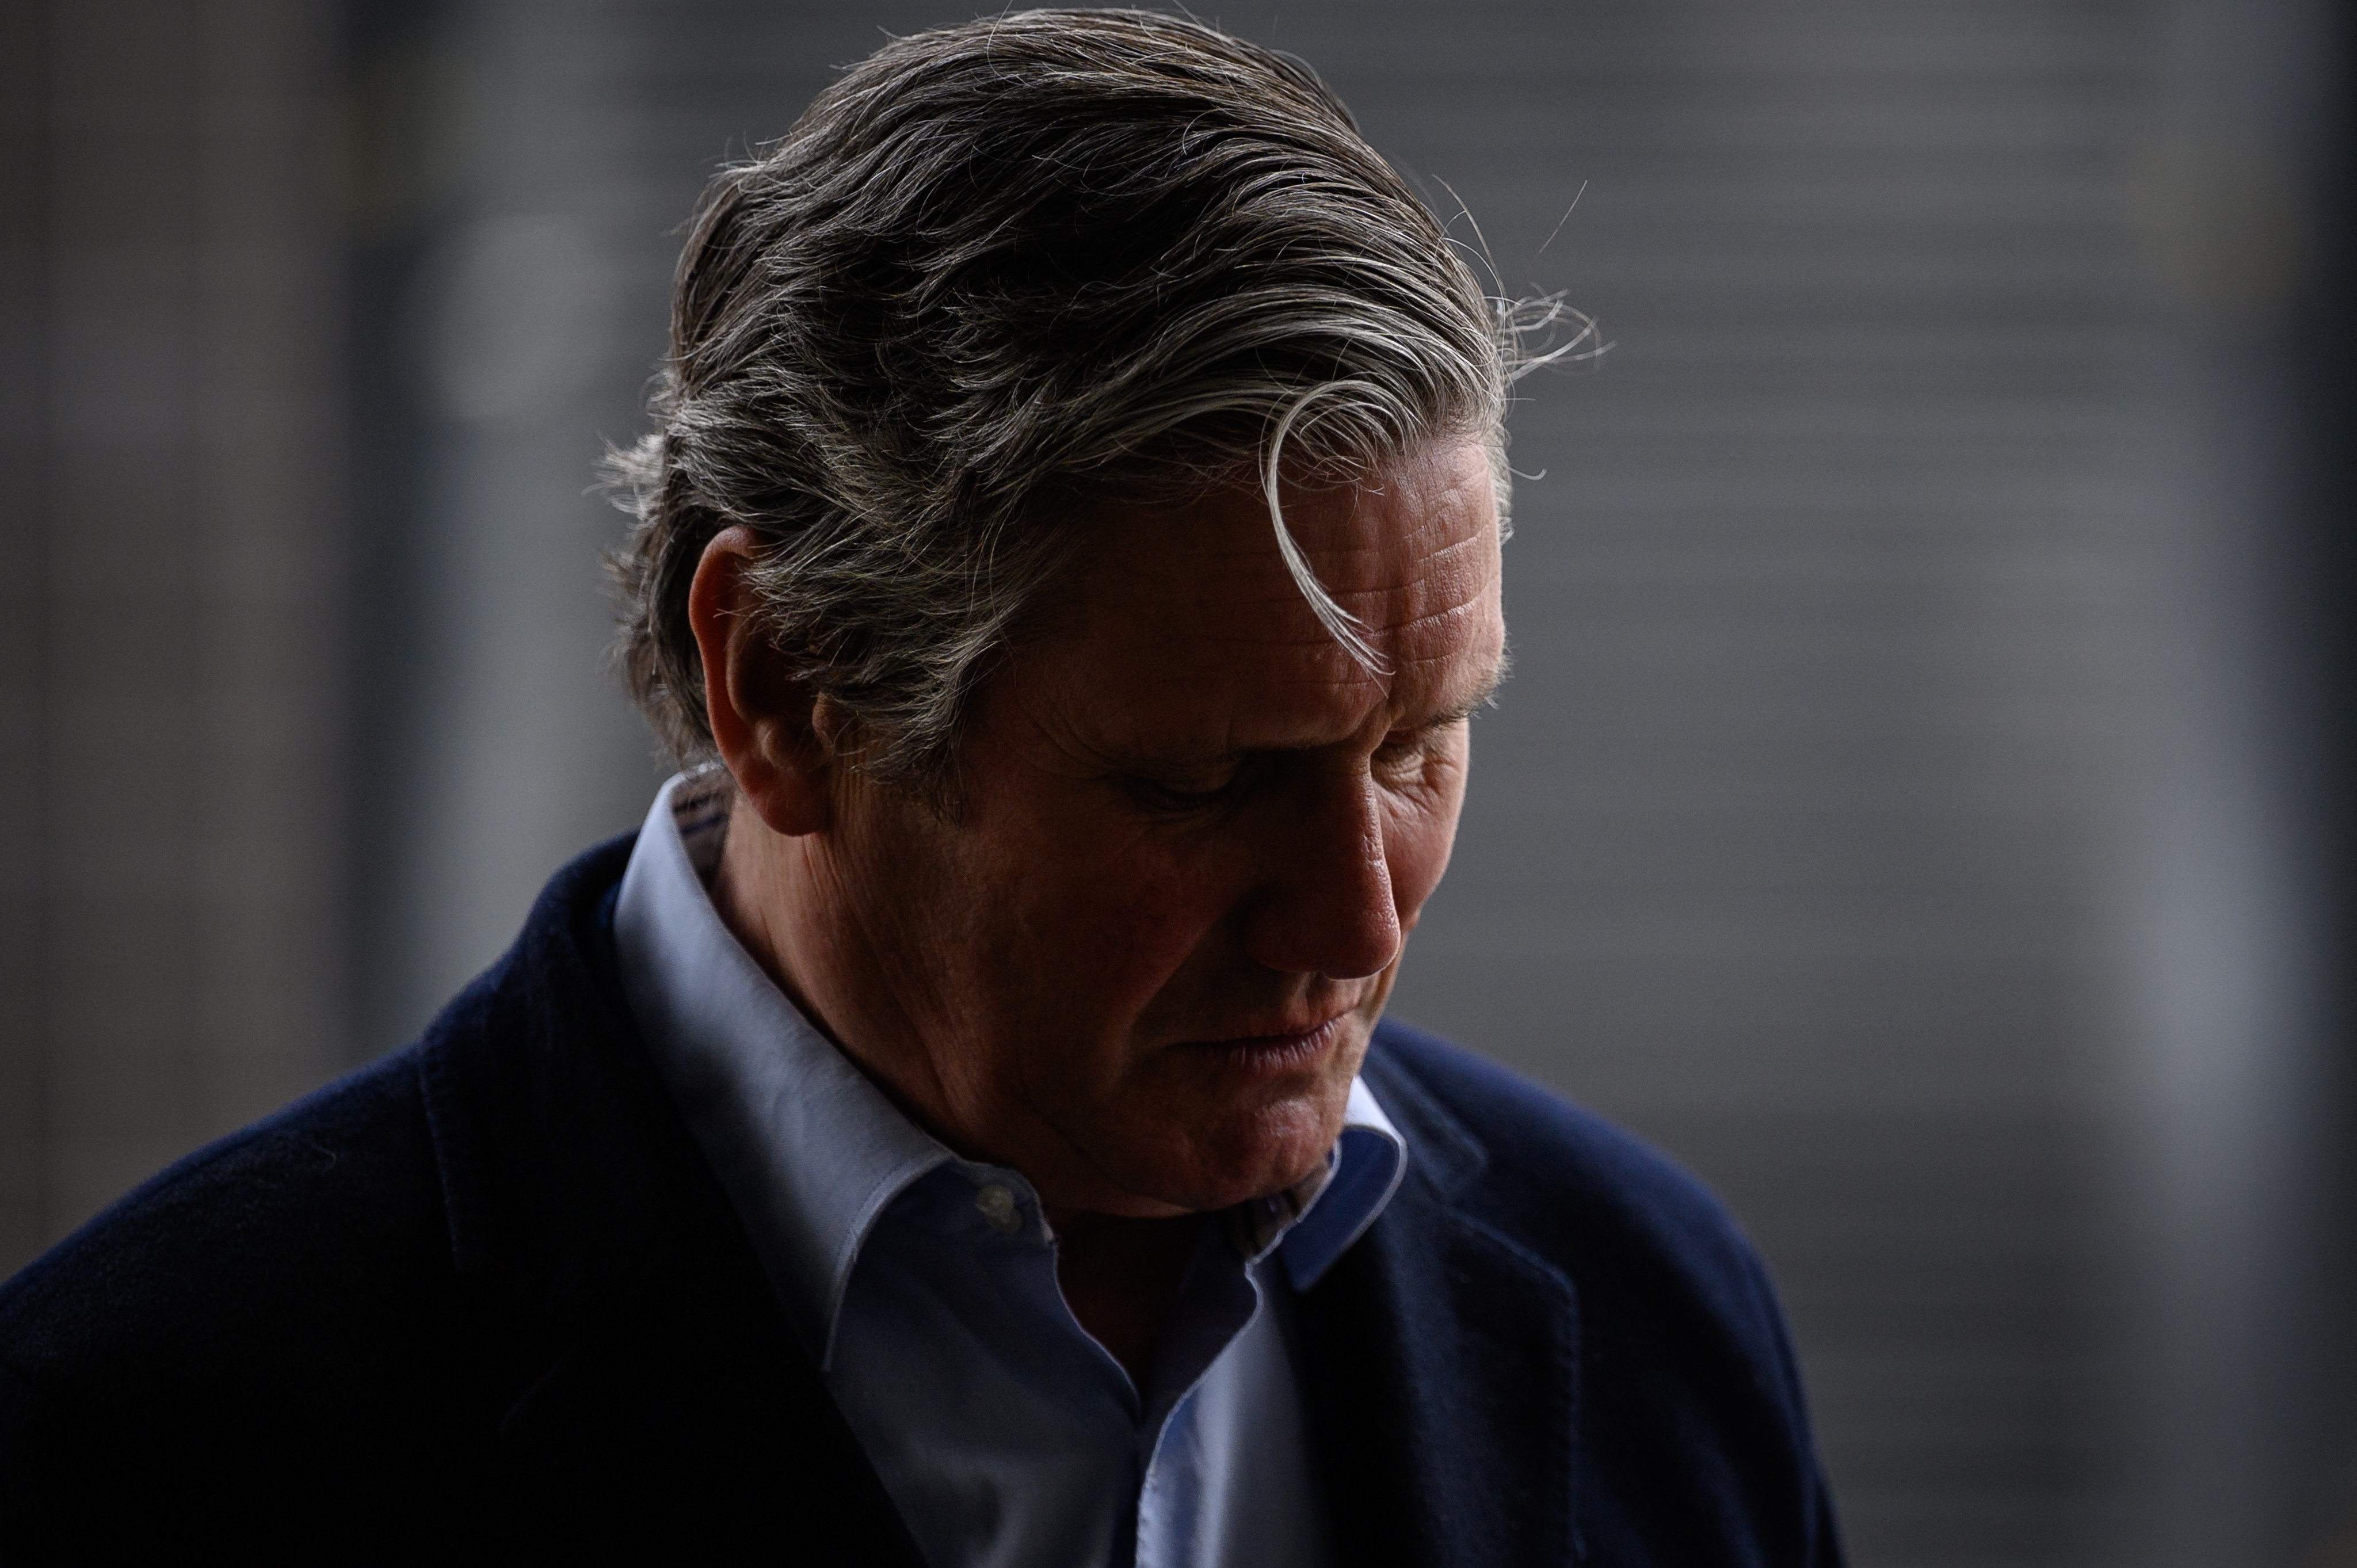 What is Keir Starmer doing wrong?